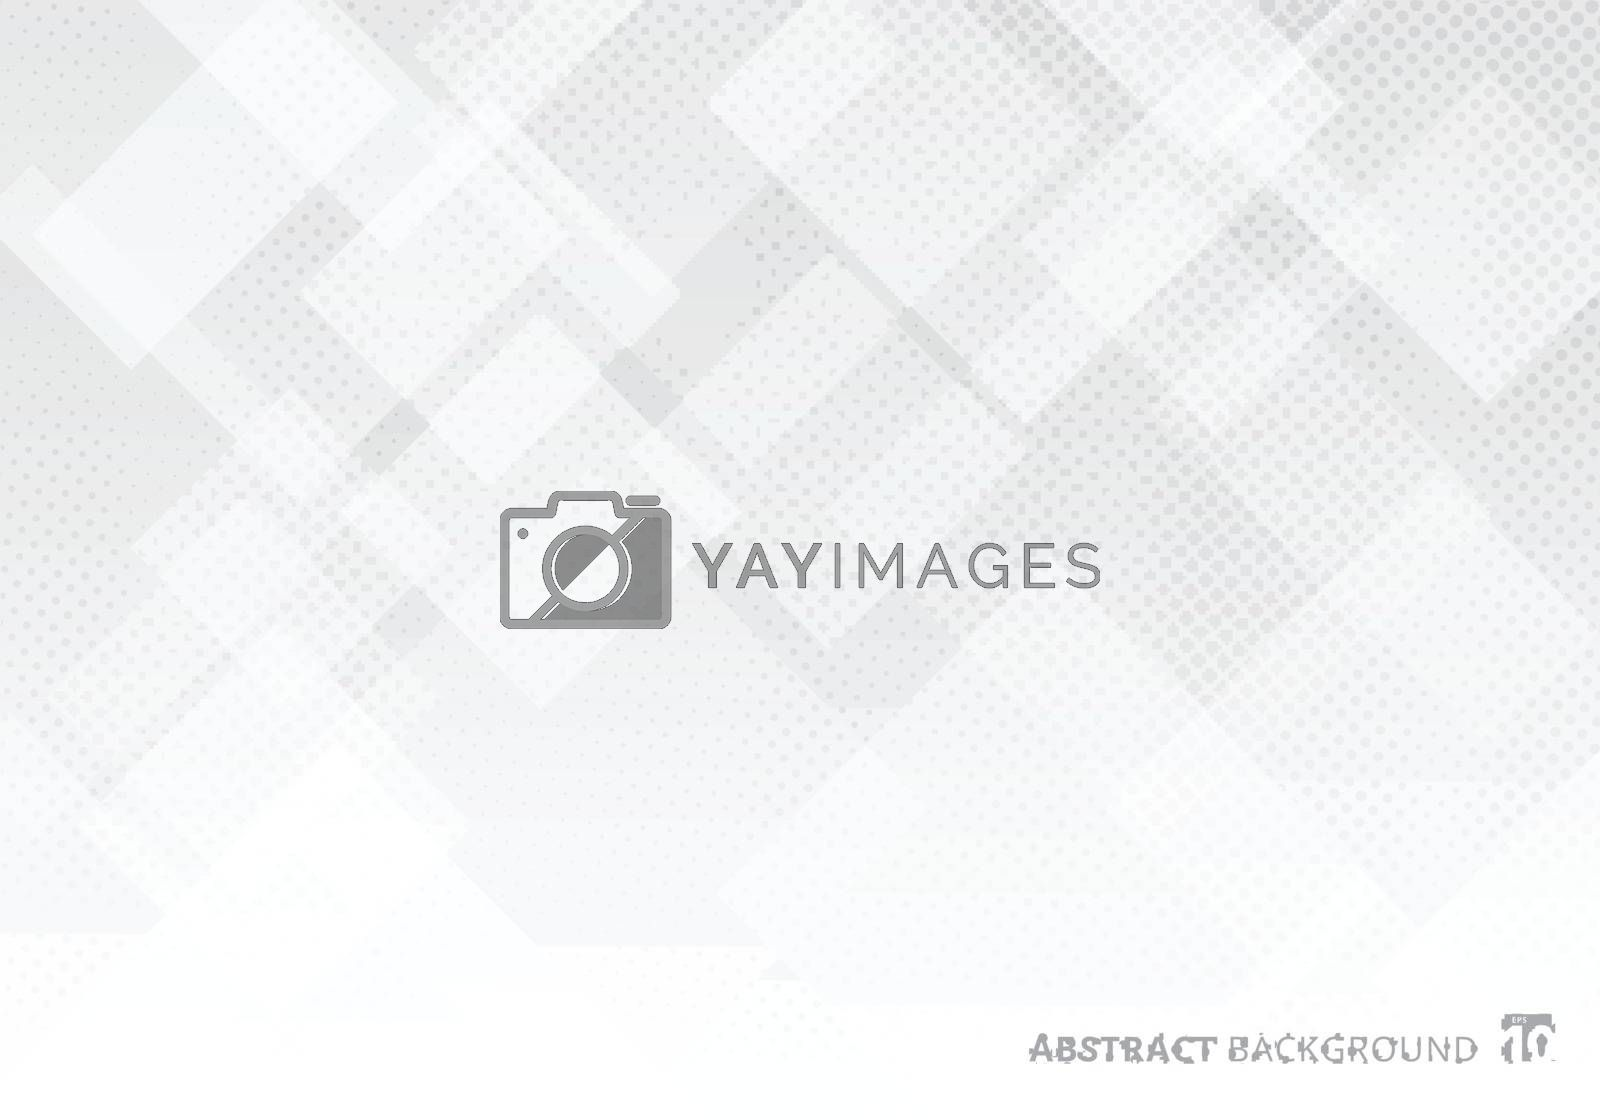 Abstract elegant squares shapes pattern overlay layer geometric white and gray gradient color background with halftone texture. Vector illustration